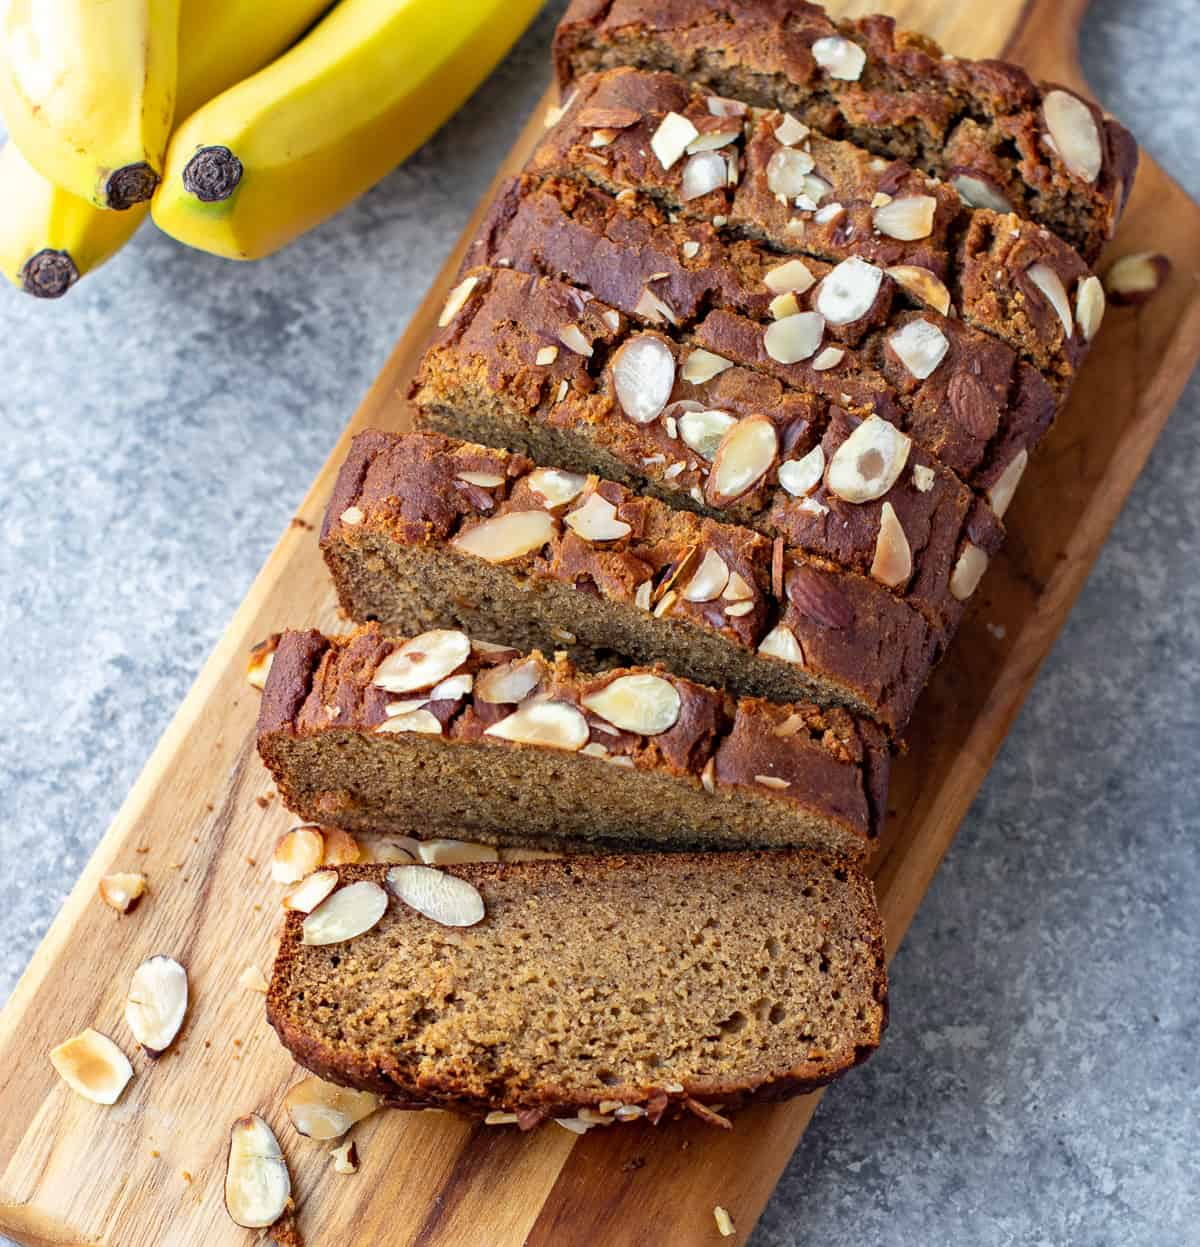 Eggless banana bread with bananas on the side